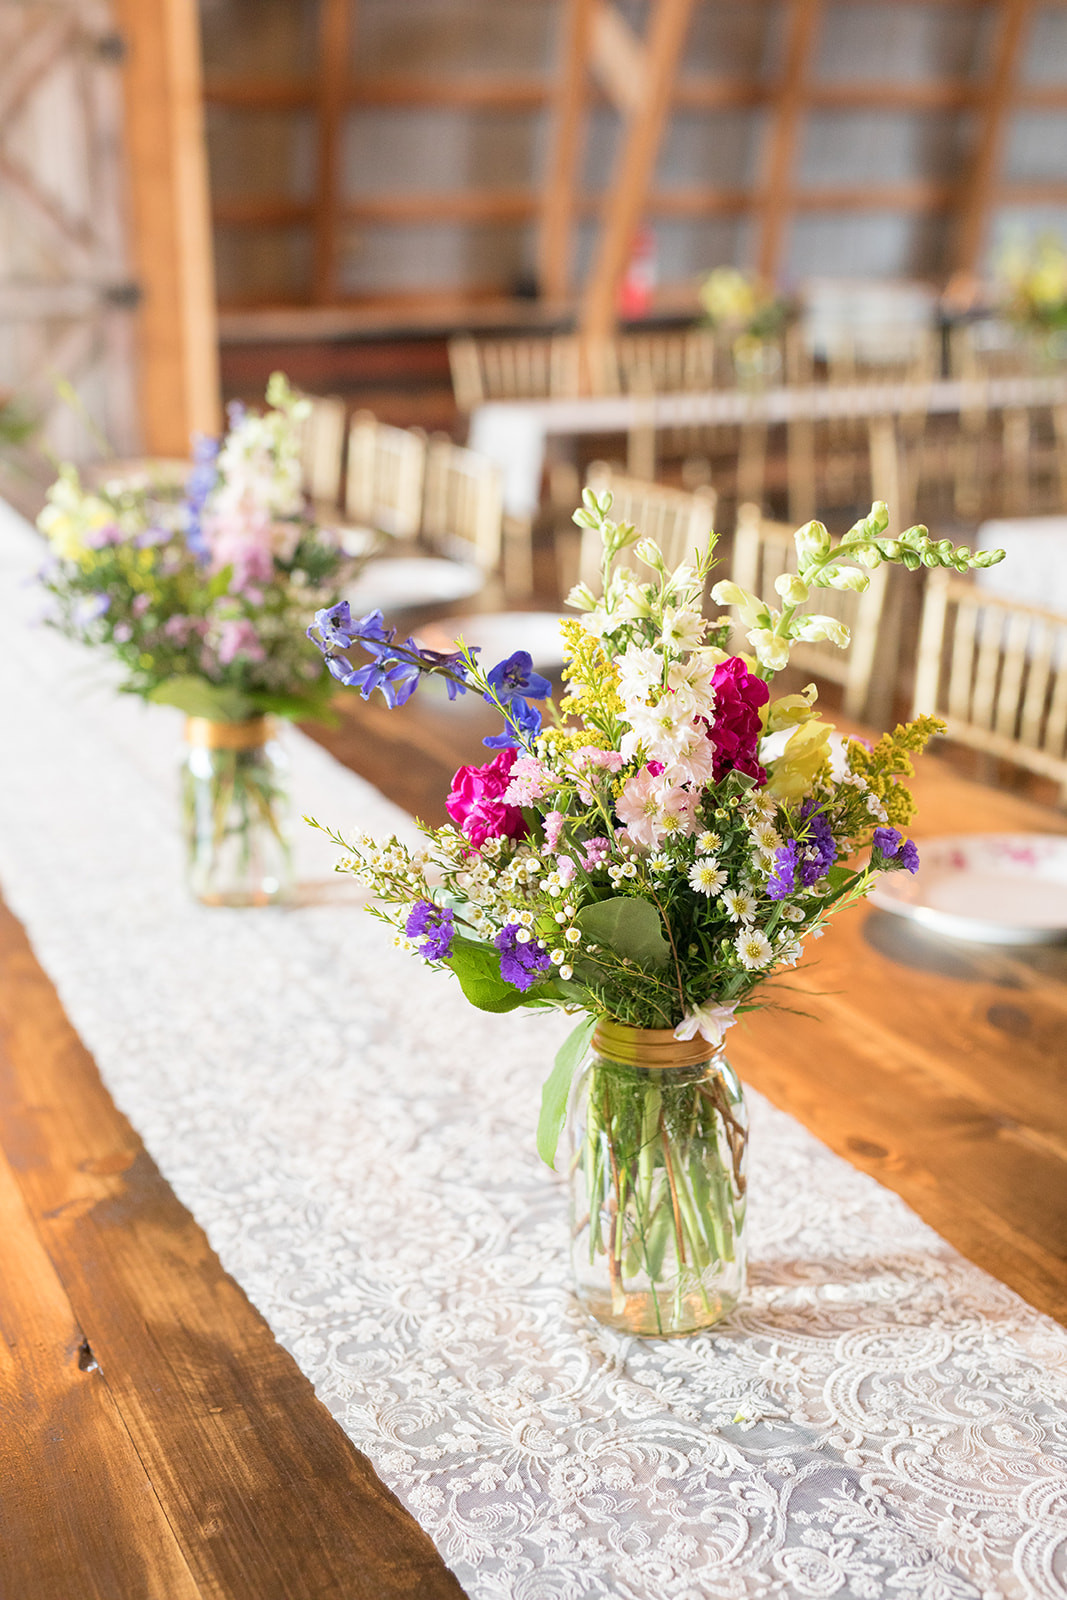 Lace + flowers + our tables= Wow!